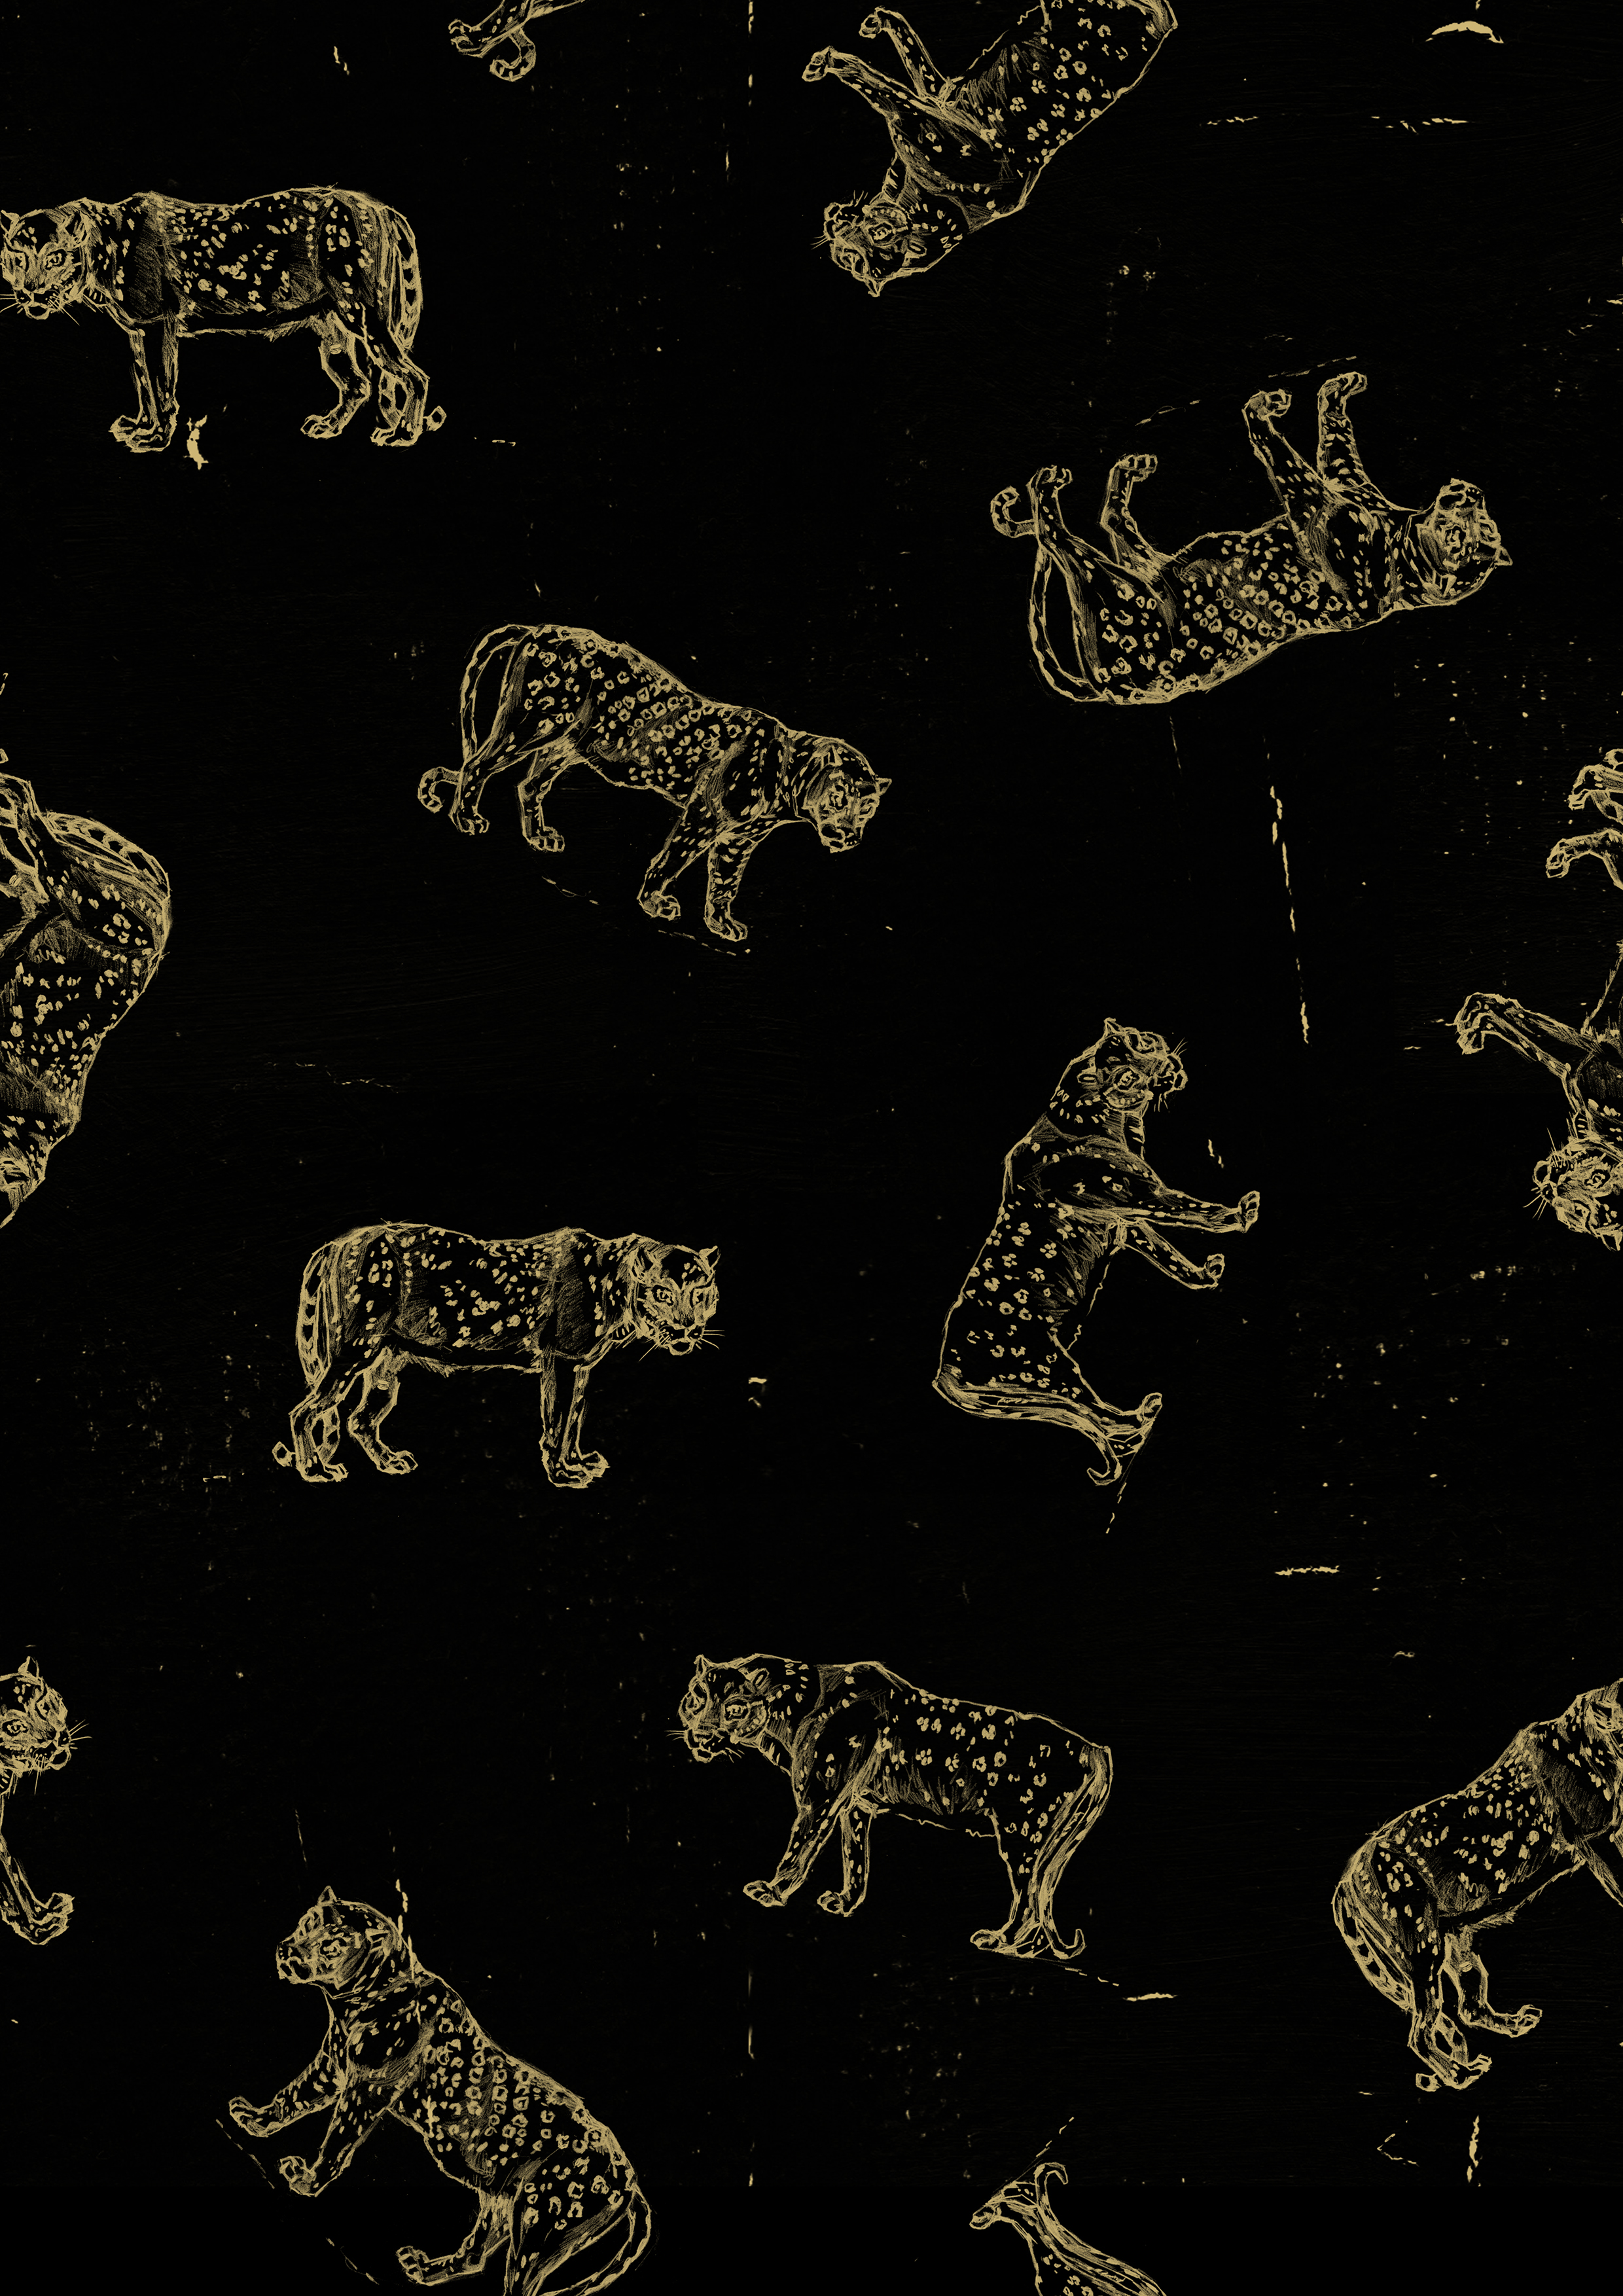 Golden Leopards    Golden Leopards  by Victoria Jones for sand&palm Another Land/Sand collection. It is inspired by the big cats that roam exotic places in faraway lands.